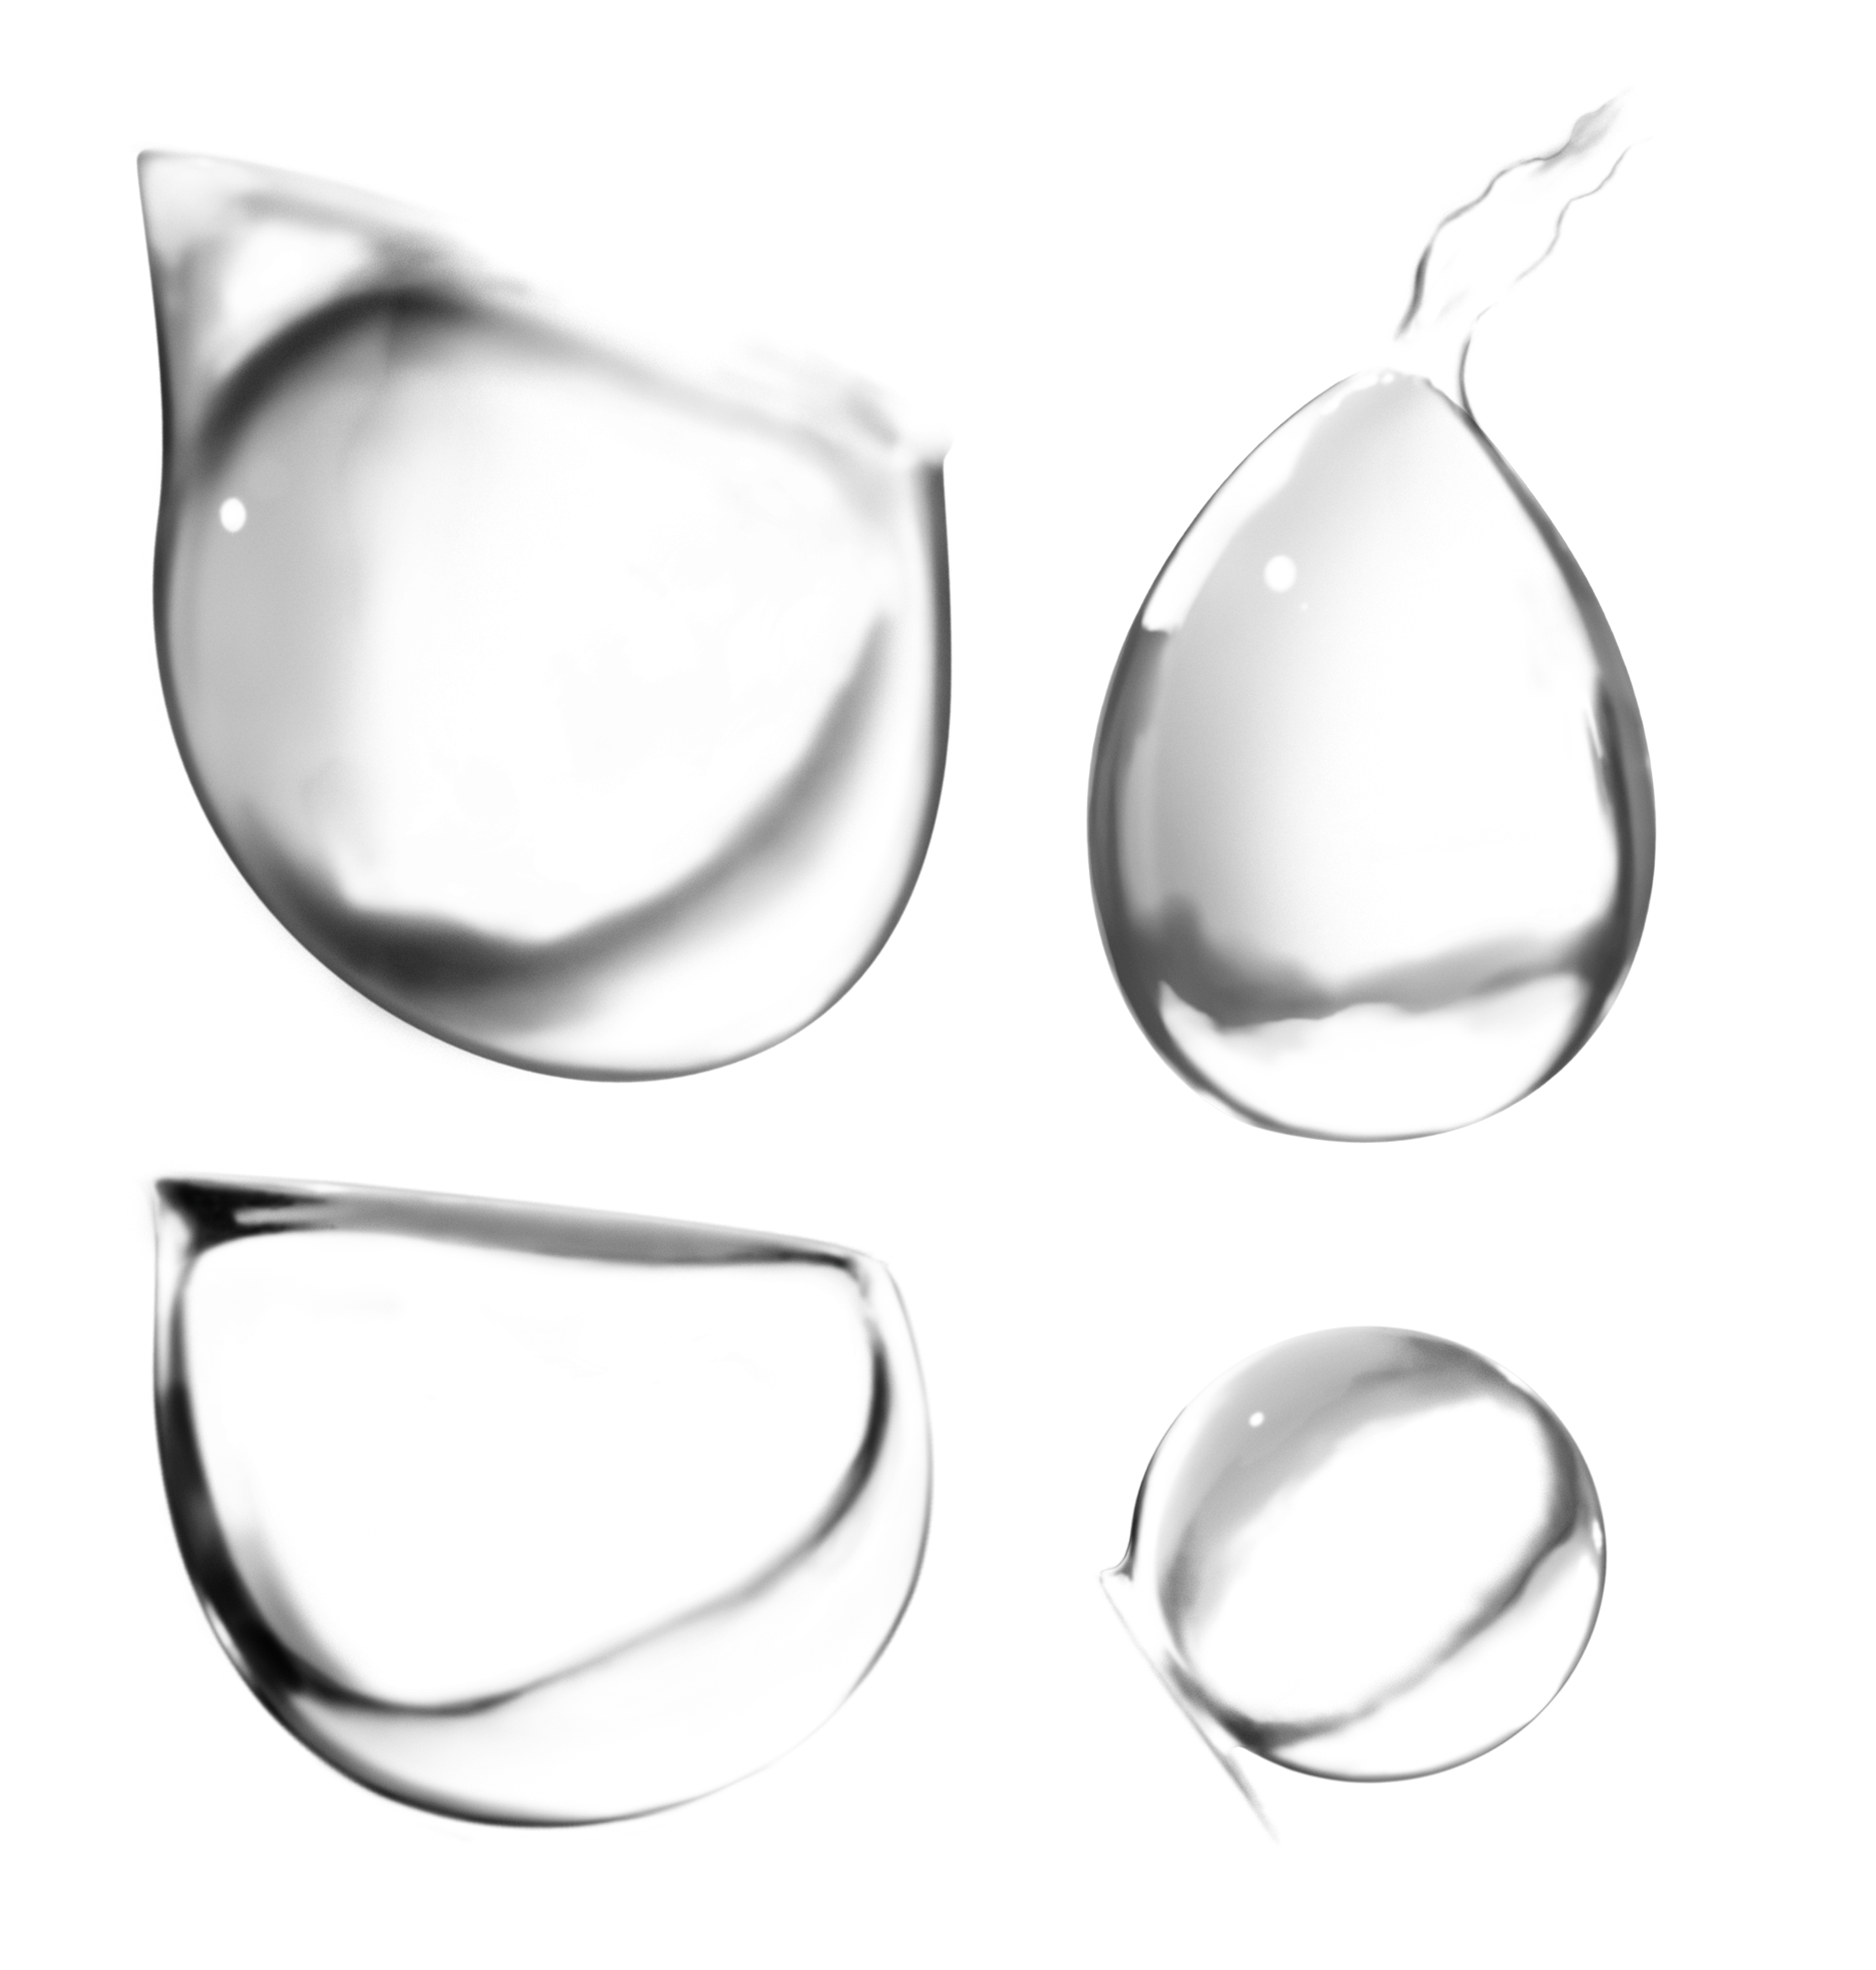 Water drops PNG